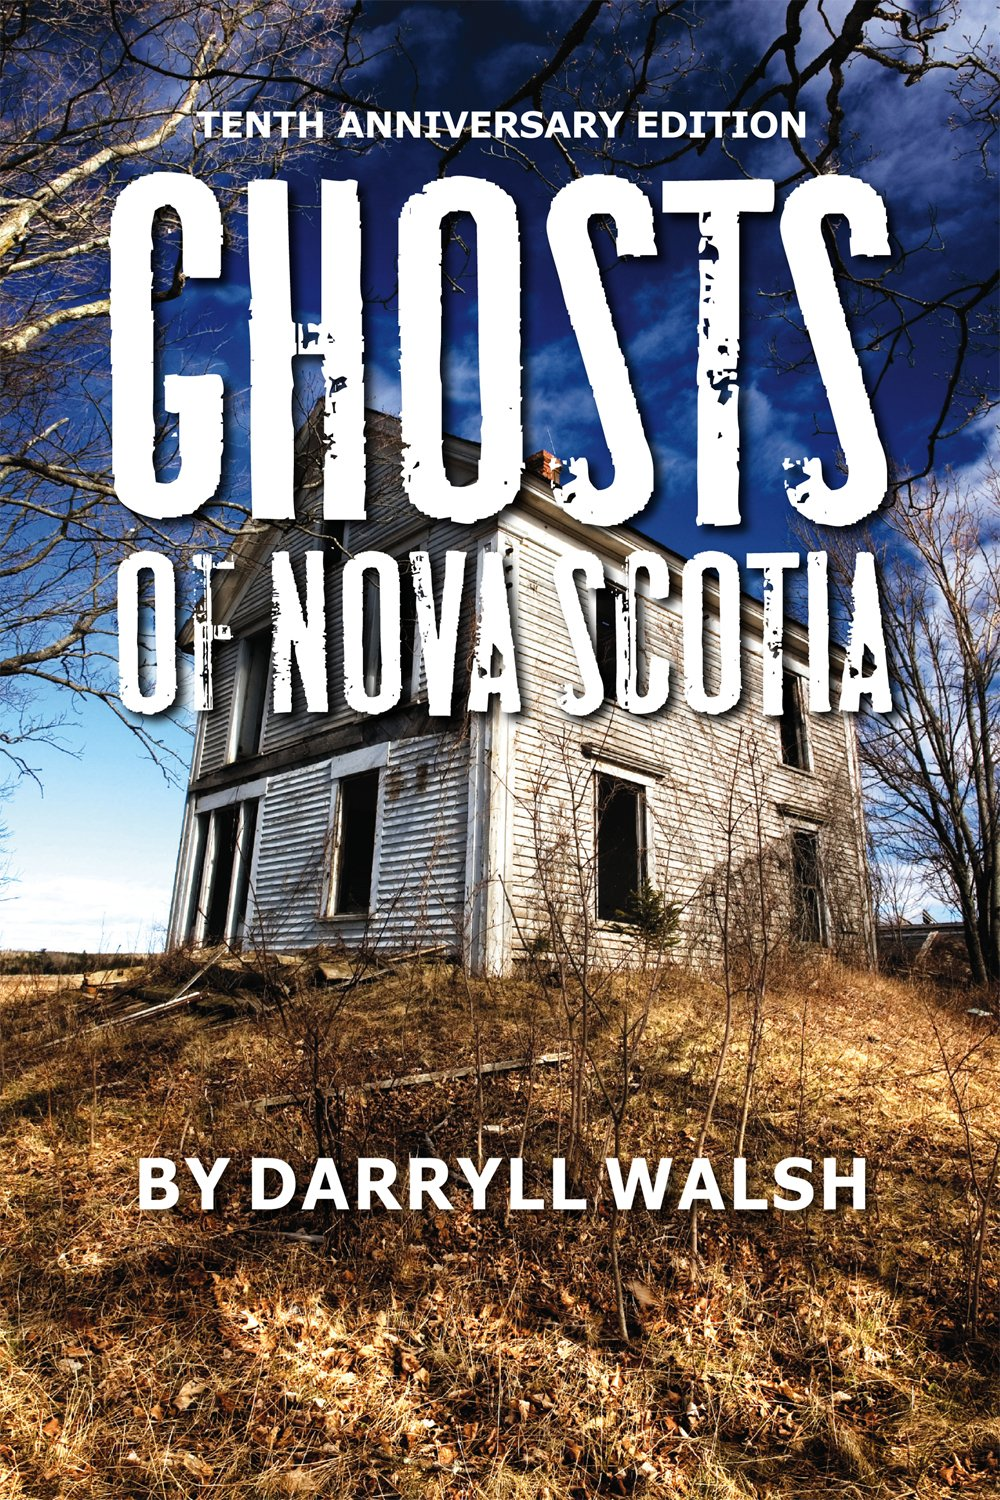 Ghosts of Nova Scotia 10th Anniversary Edition